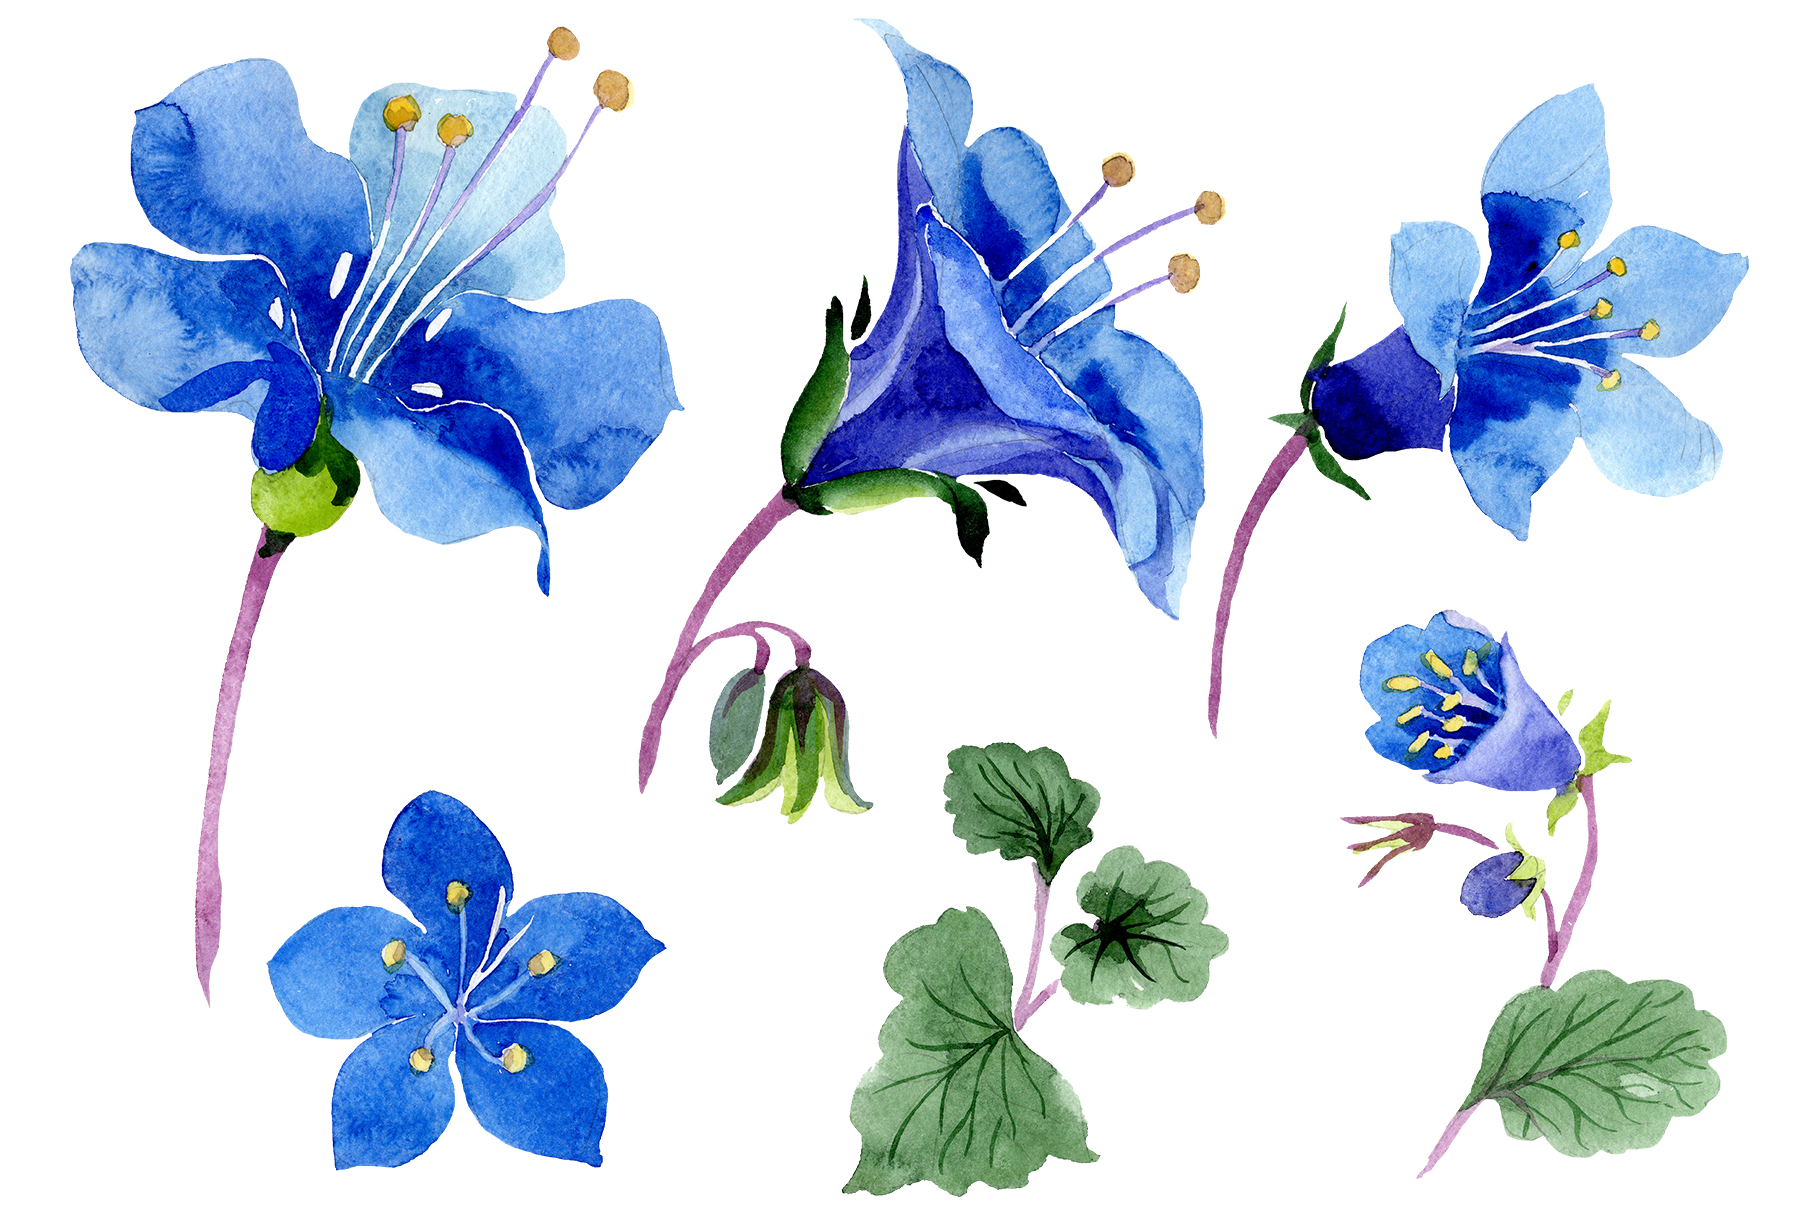 Download Free Phacelia Bellflower Blue Flower Graphic By Mystocks Creative for Cricut Explore, Silhouette and other cutting machines.